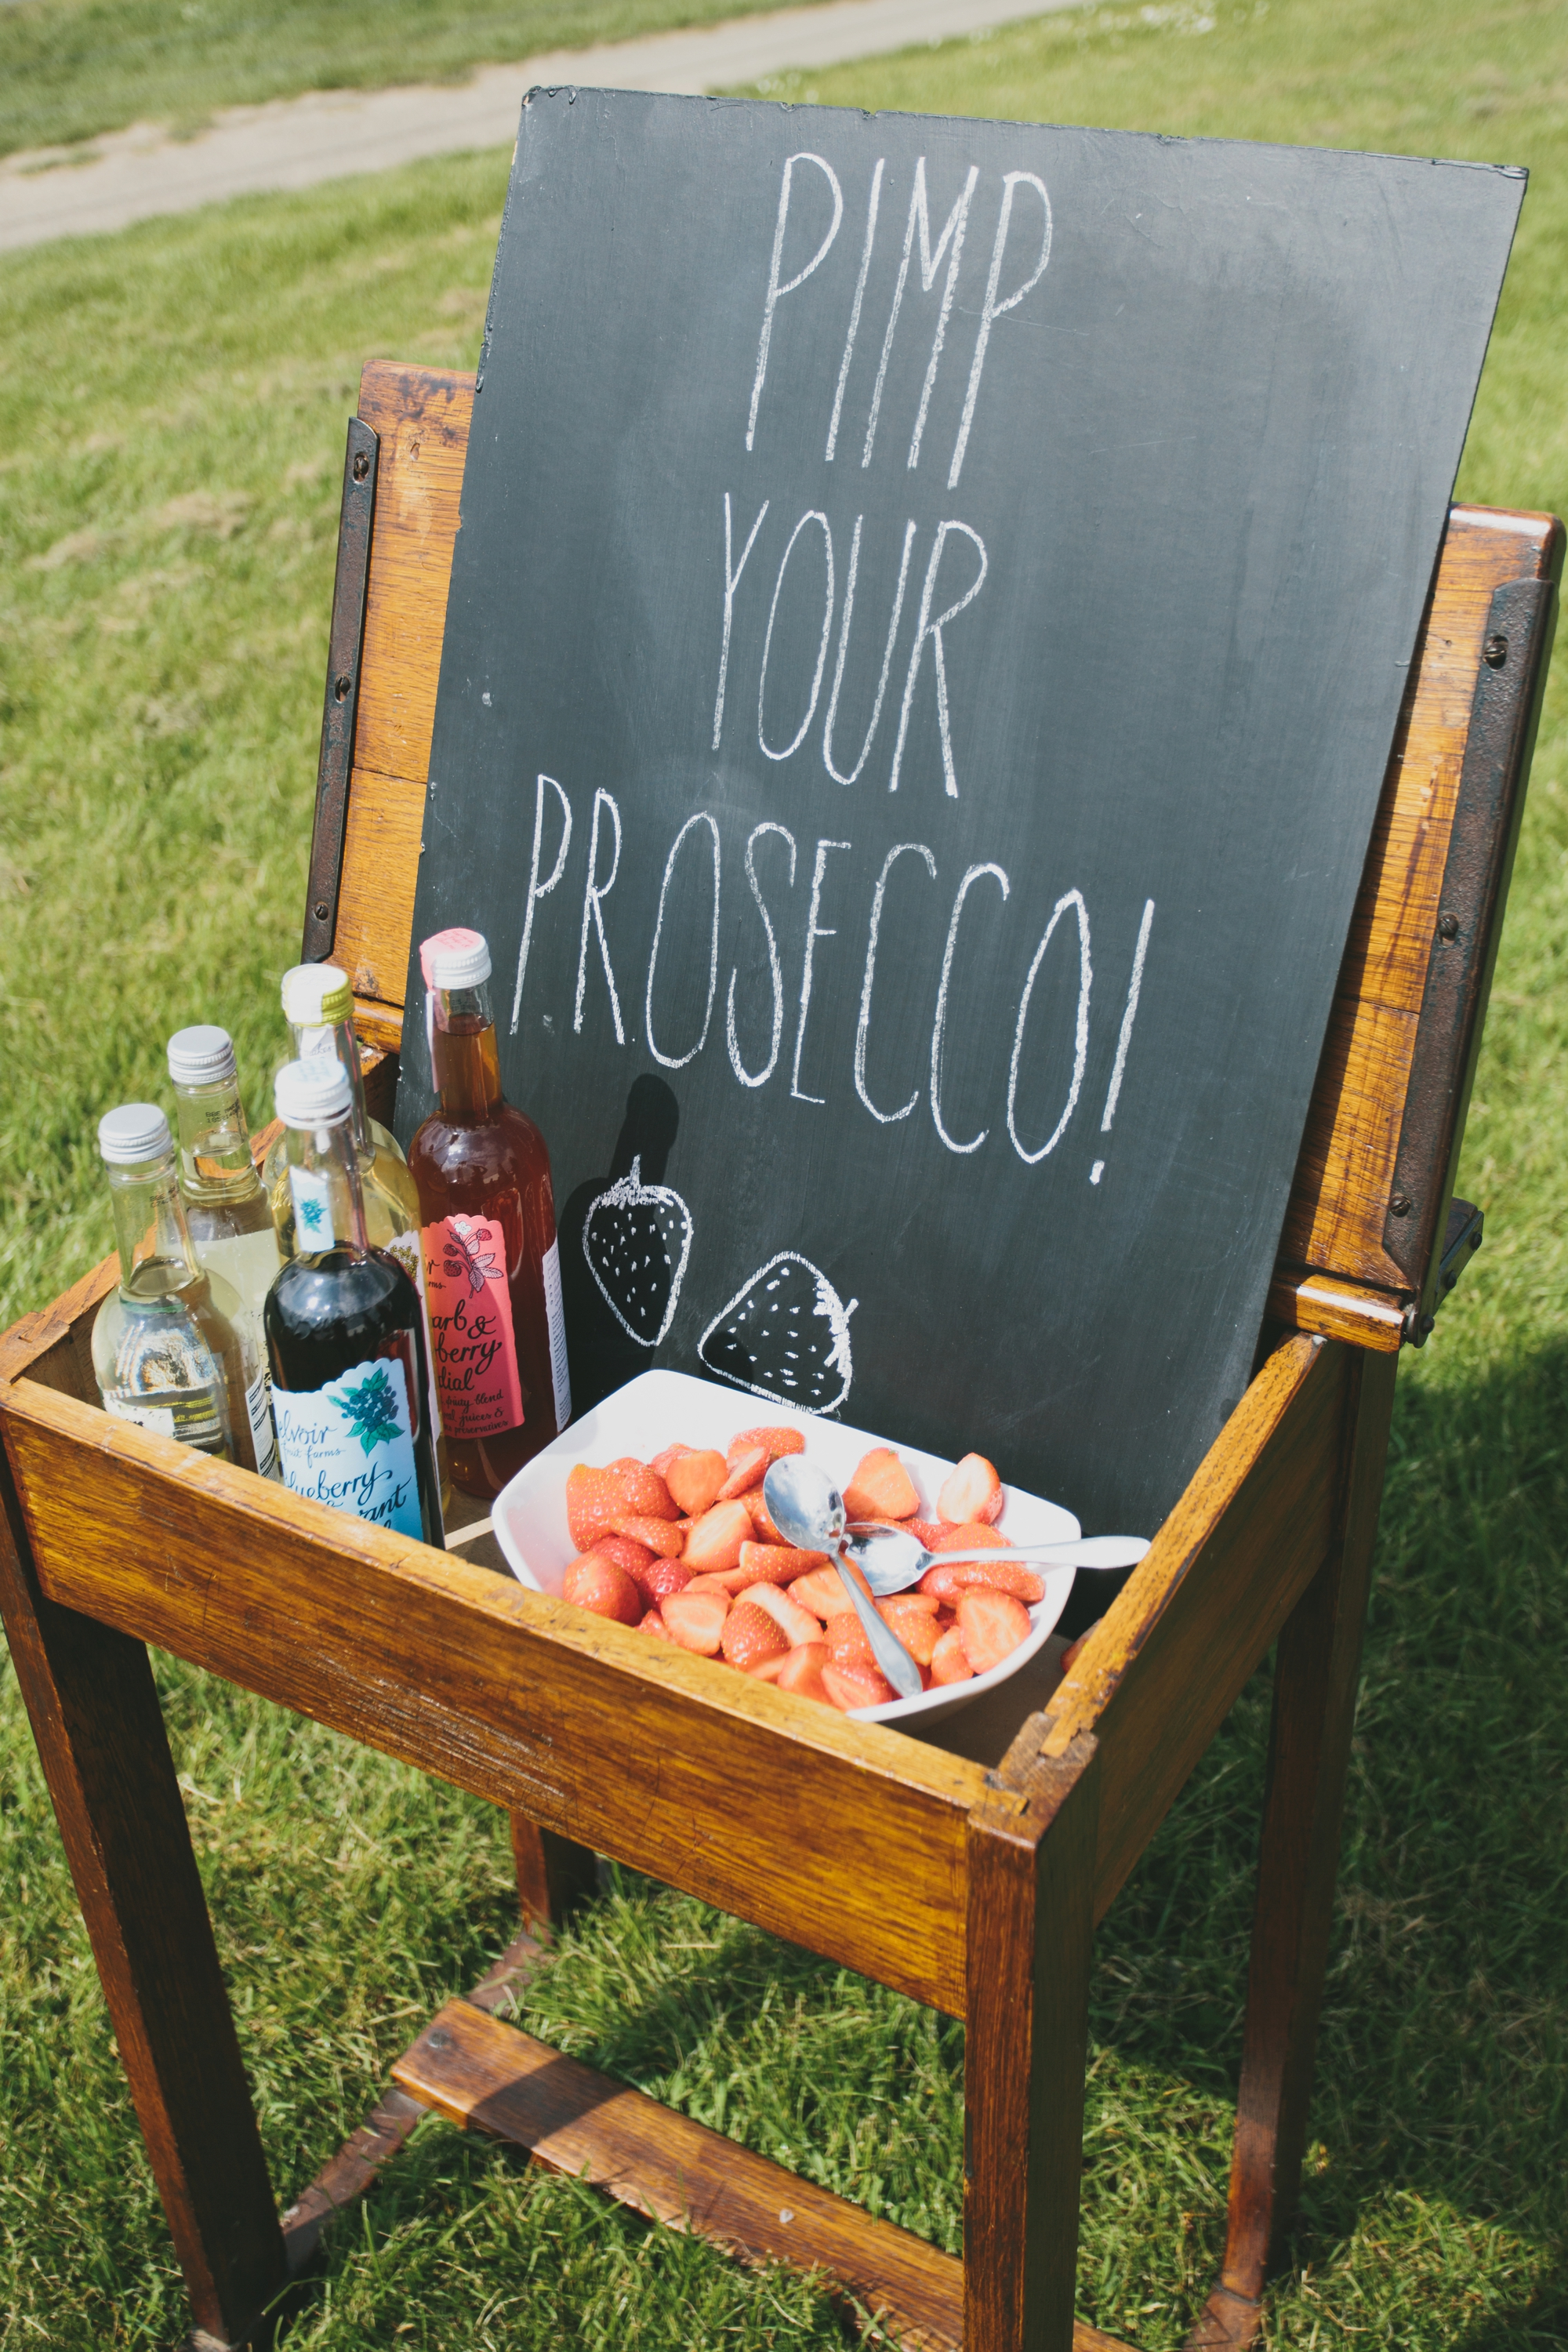 pimp your prosecco wedding chalkboard.jpg